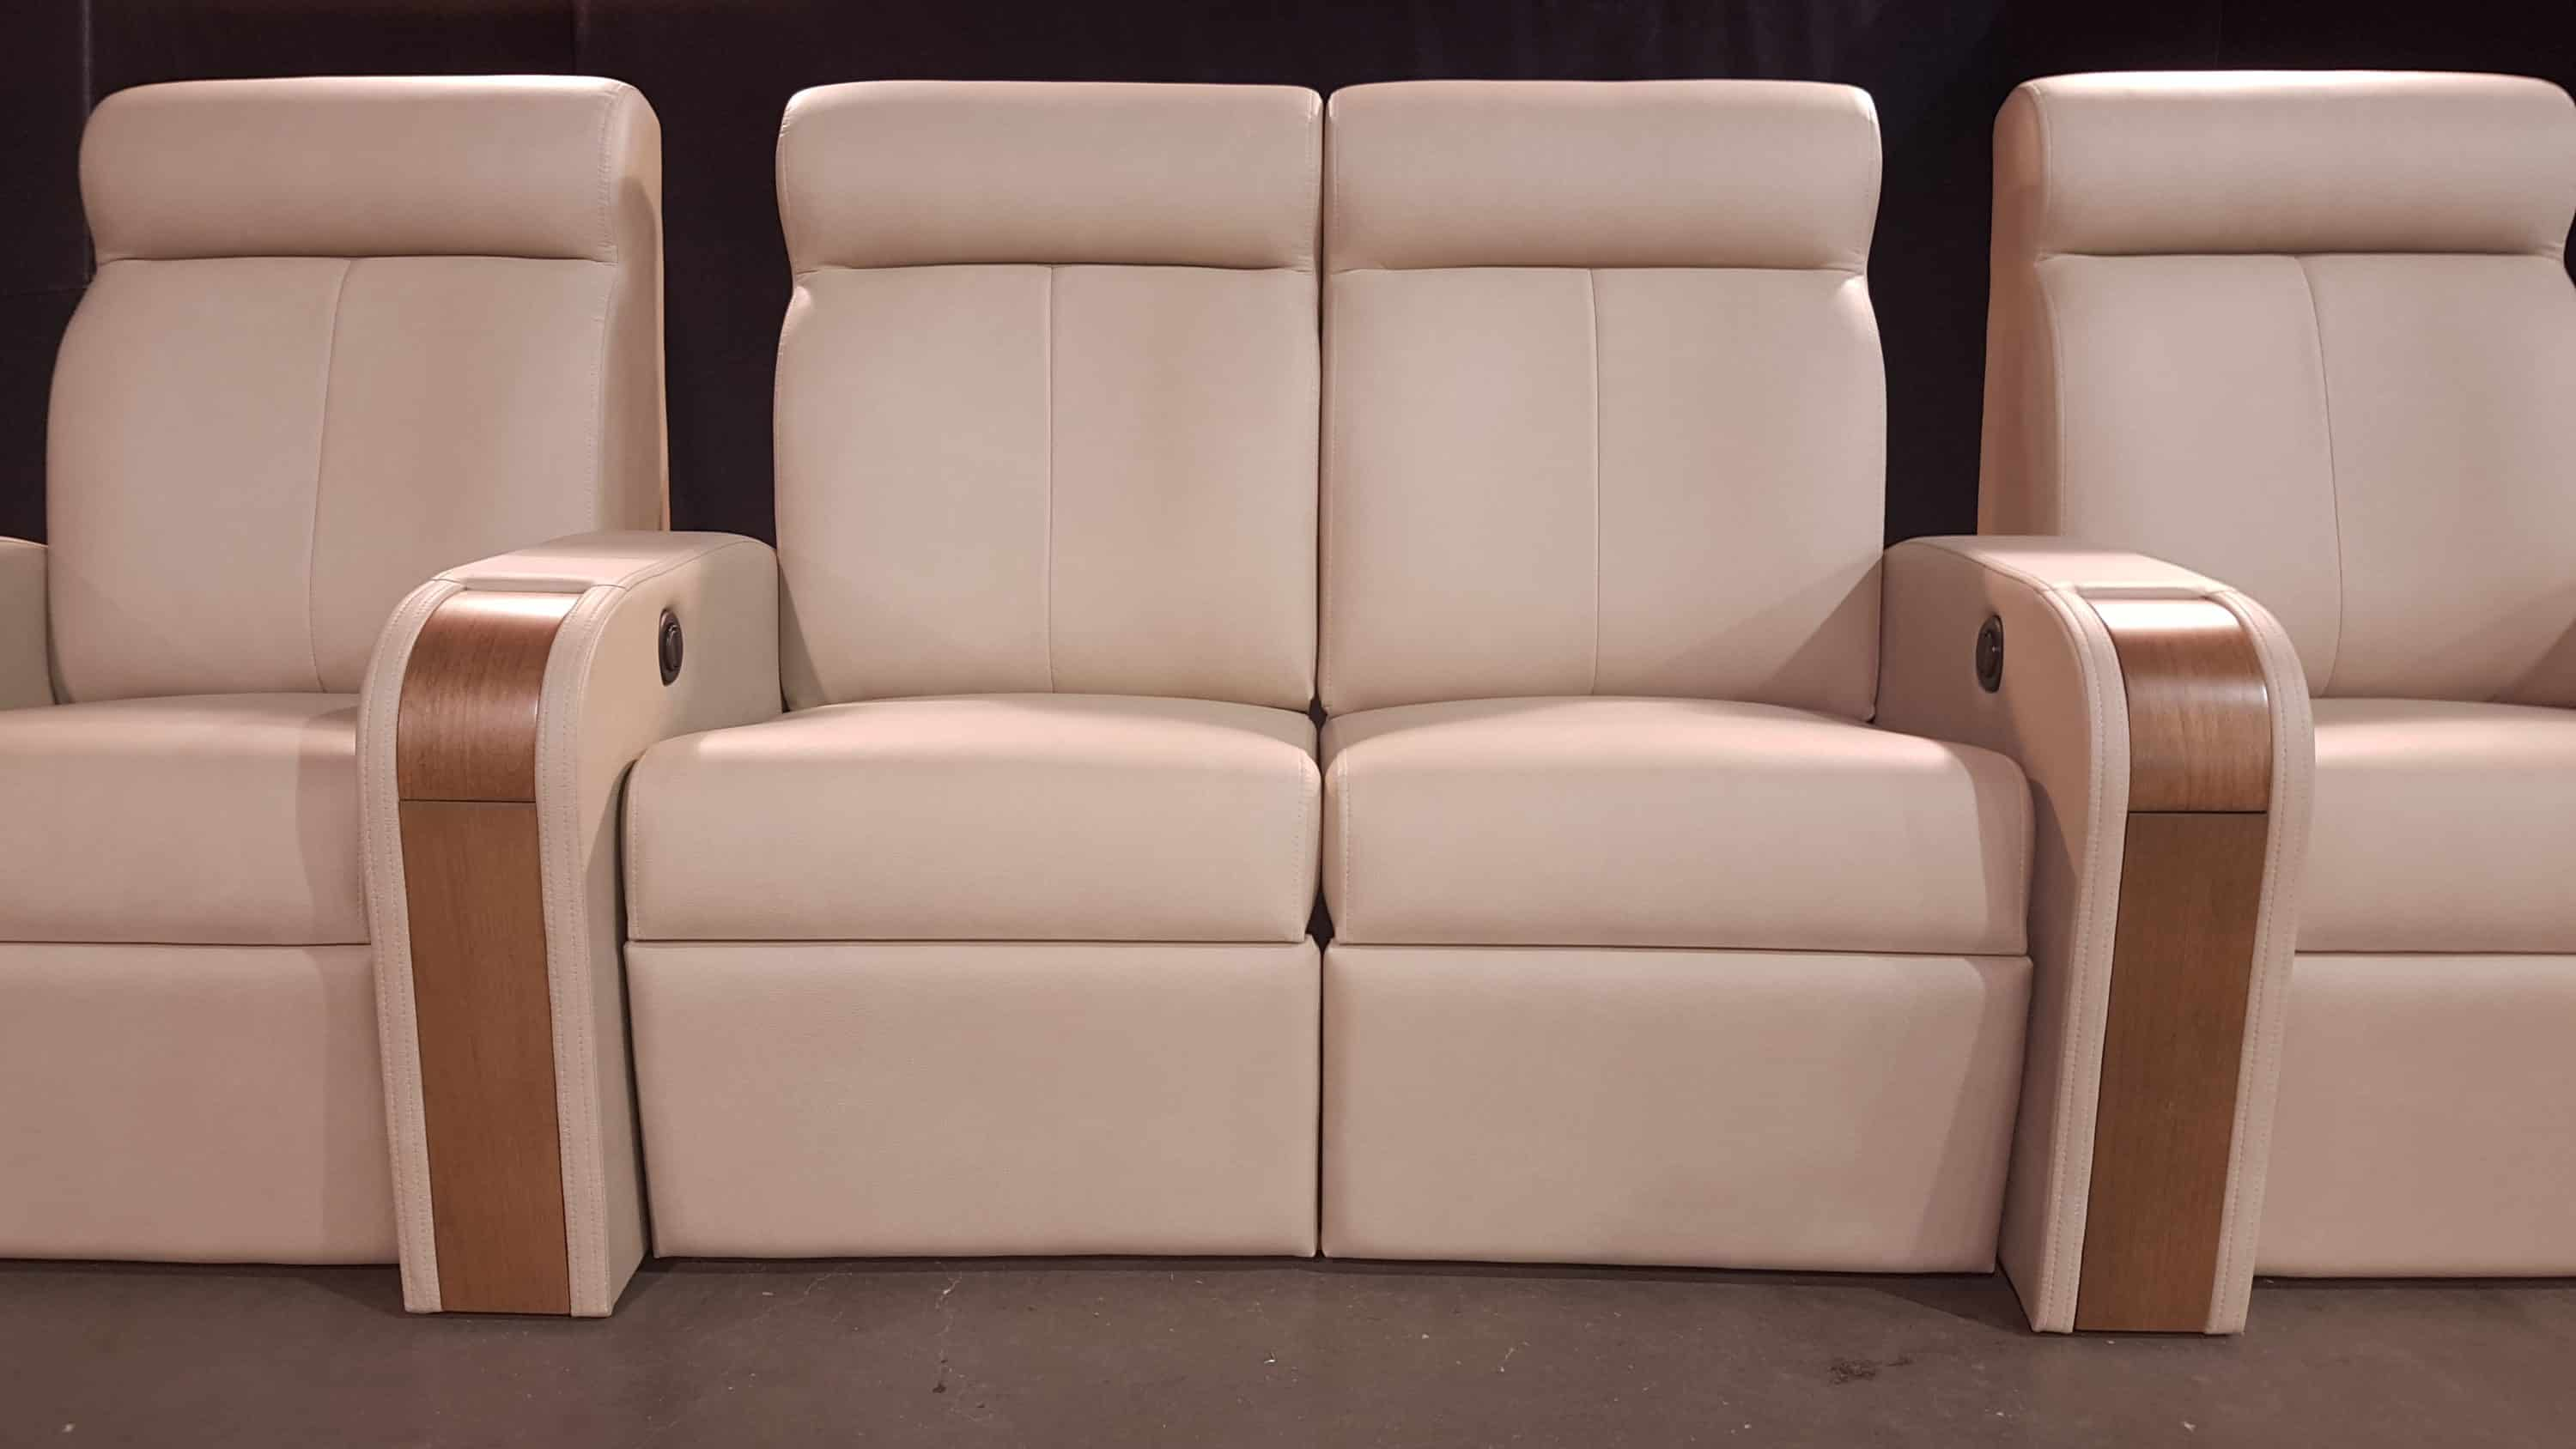 Straight Flanked Loveseat in White Leather with a Wood Finish